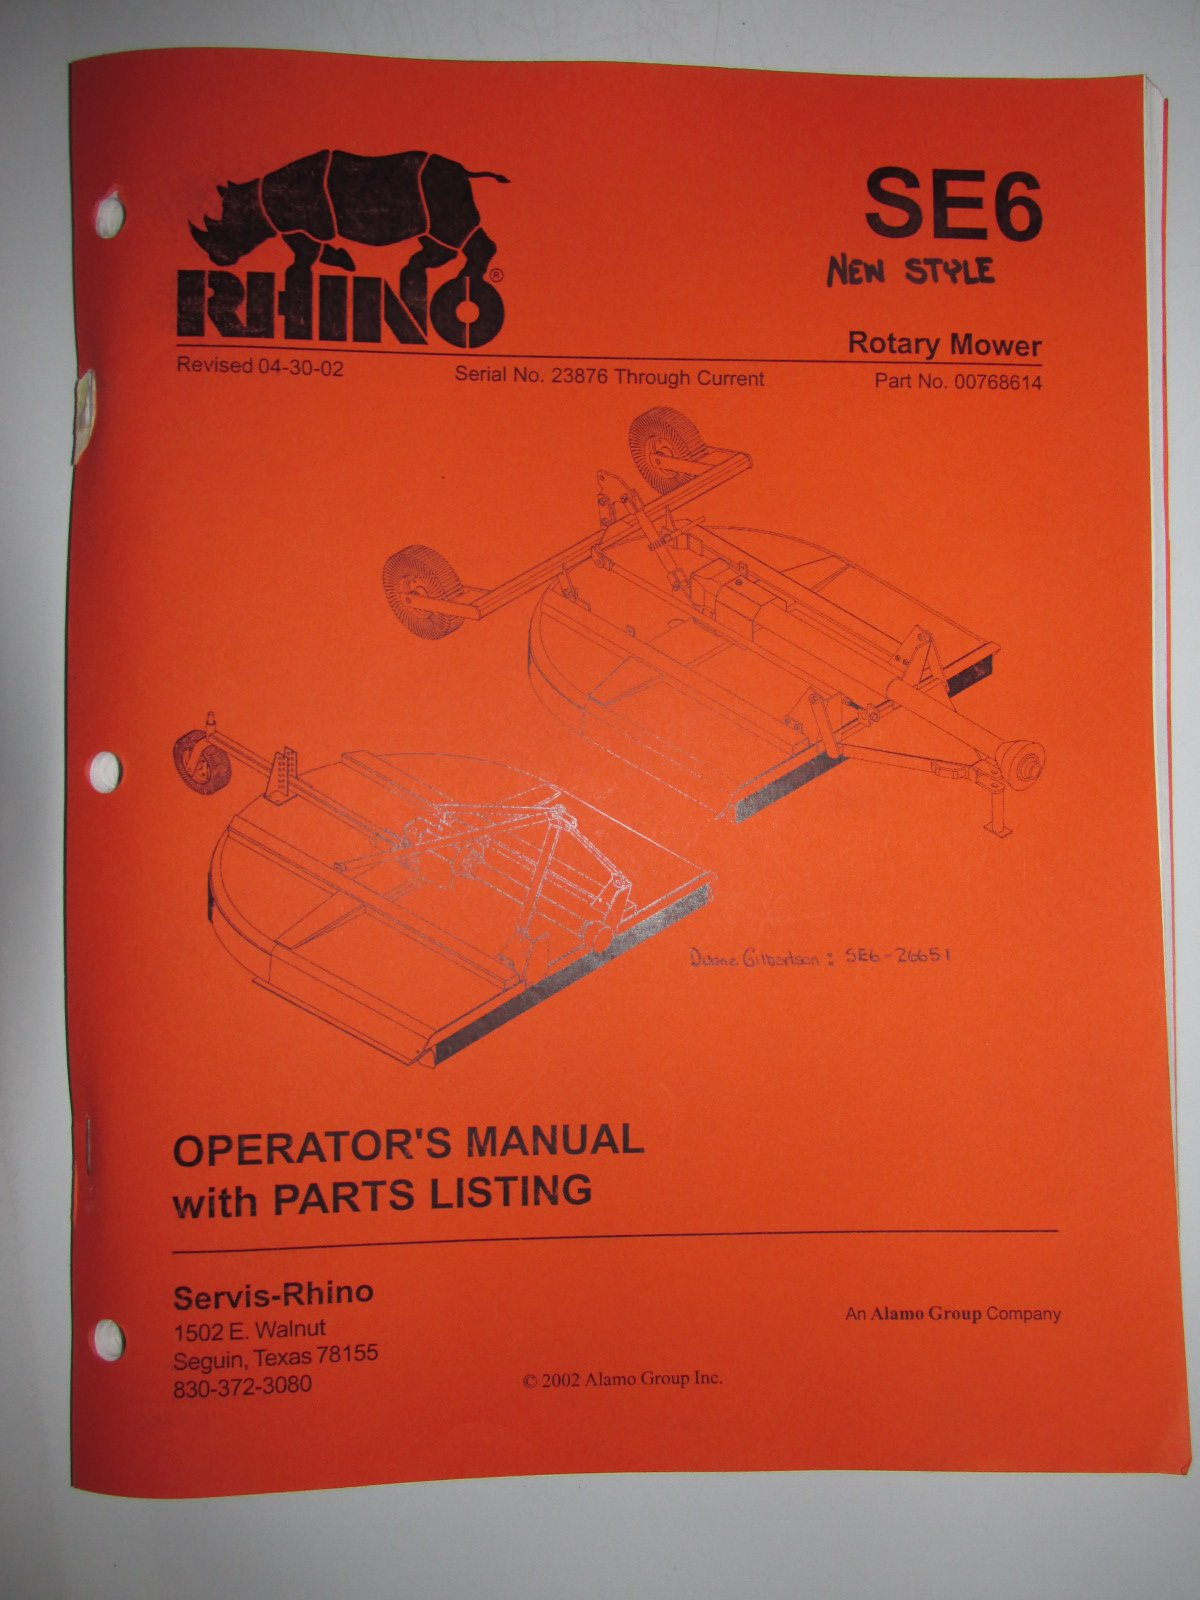 Rhino SE6 (New Style) Rotary Mower Operators Manual/Catalog